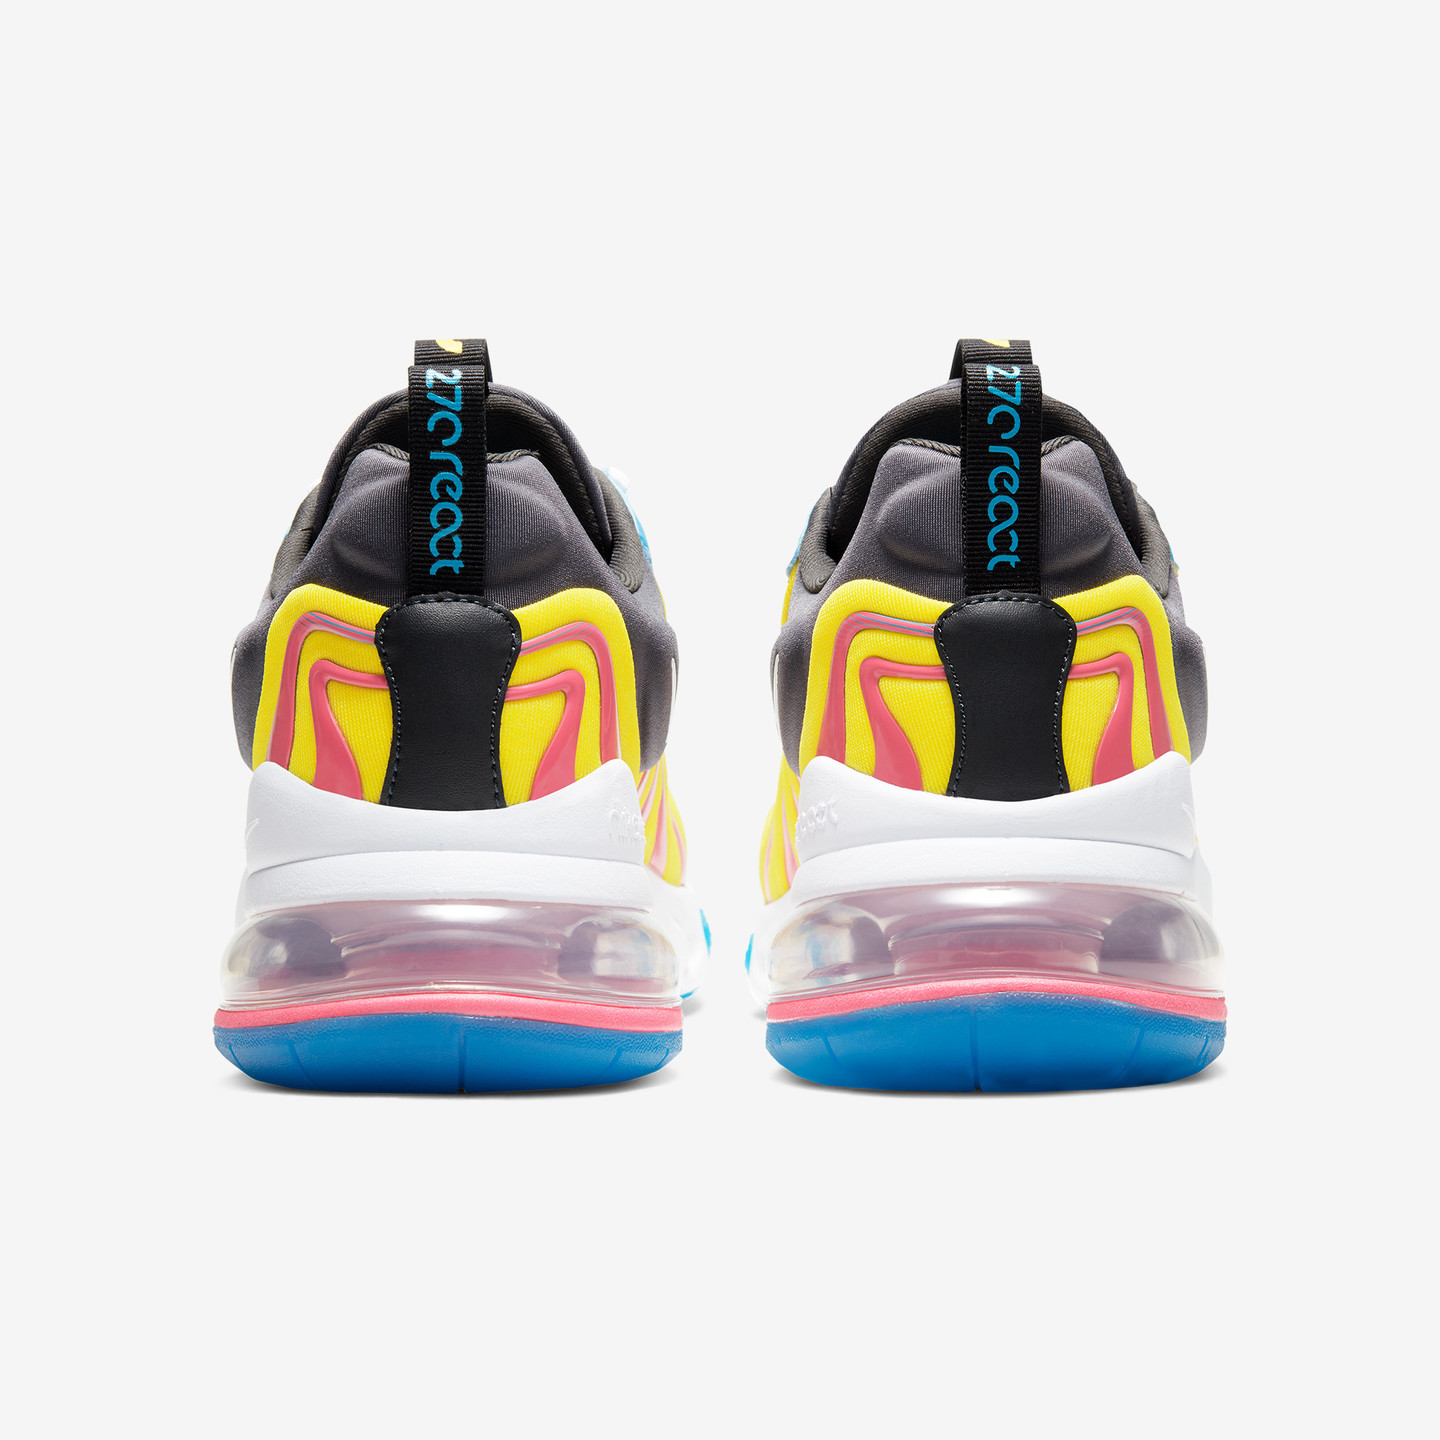 Nike Air Max 270 React Eng Laser Blue / White / Anthracite / Watermelon CD0113-400